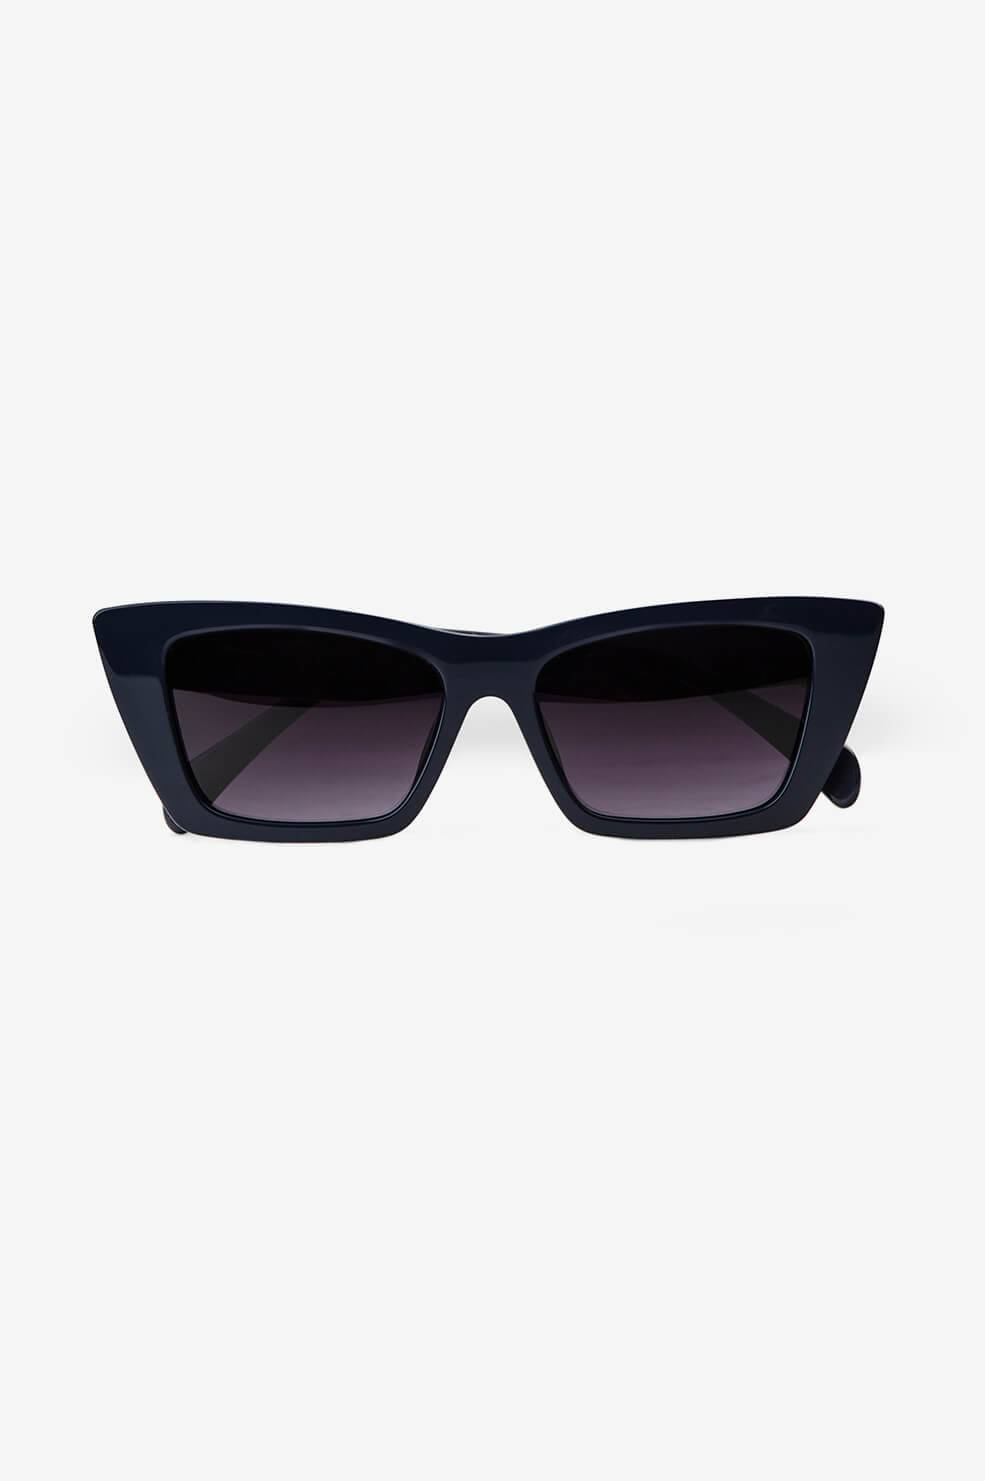 ANINE BING Levi Sunglasses in Navy  - Navy - Size: One Size